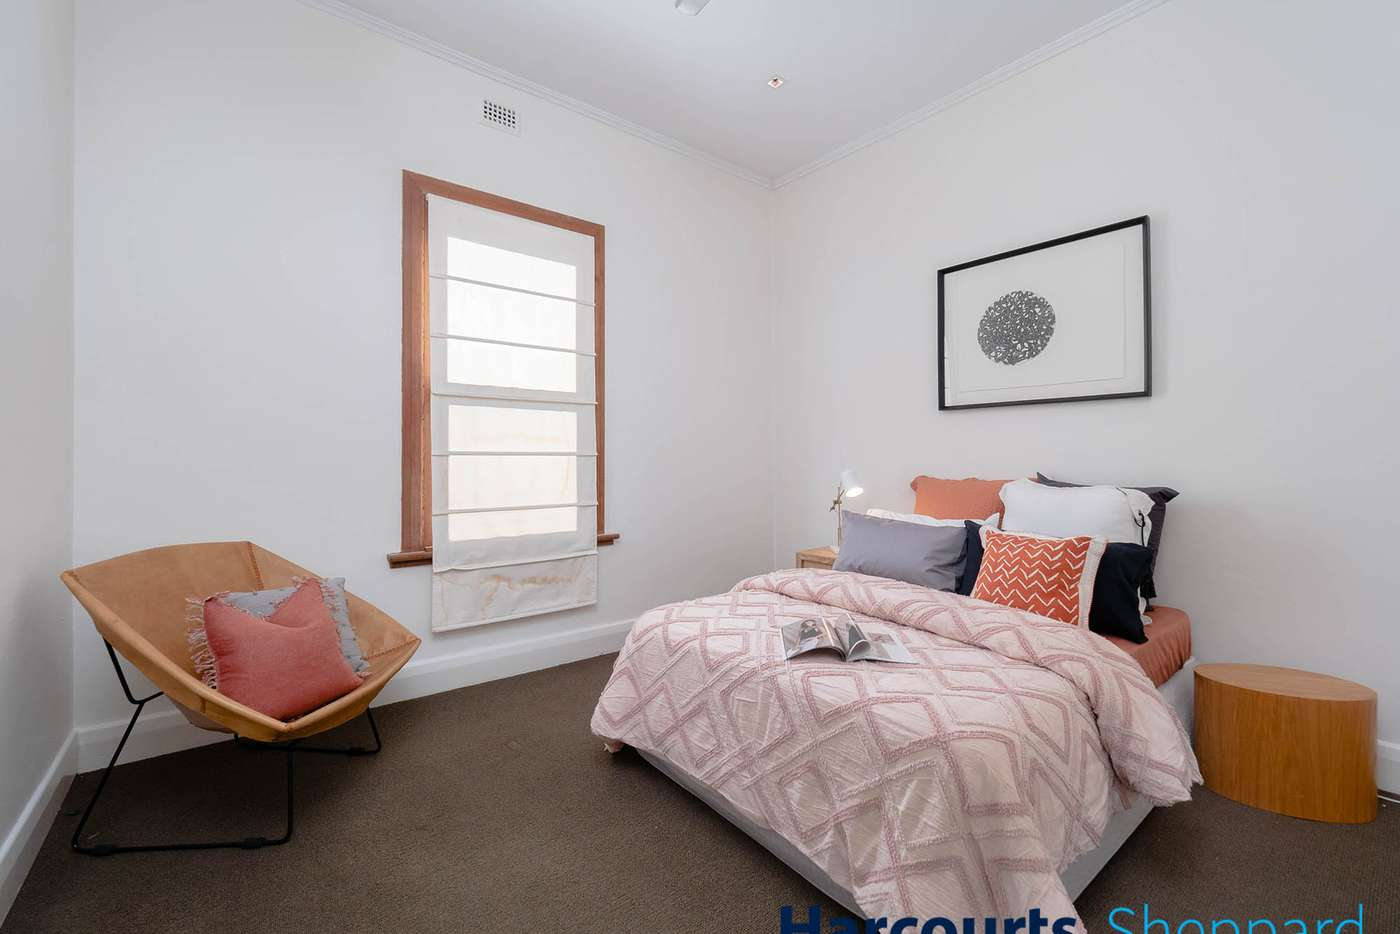 Sixth view of Homely house listing, 13a Norma Street, Mile End SA 5031